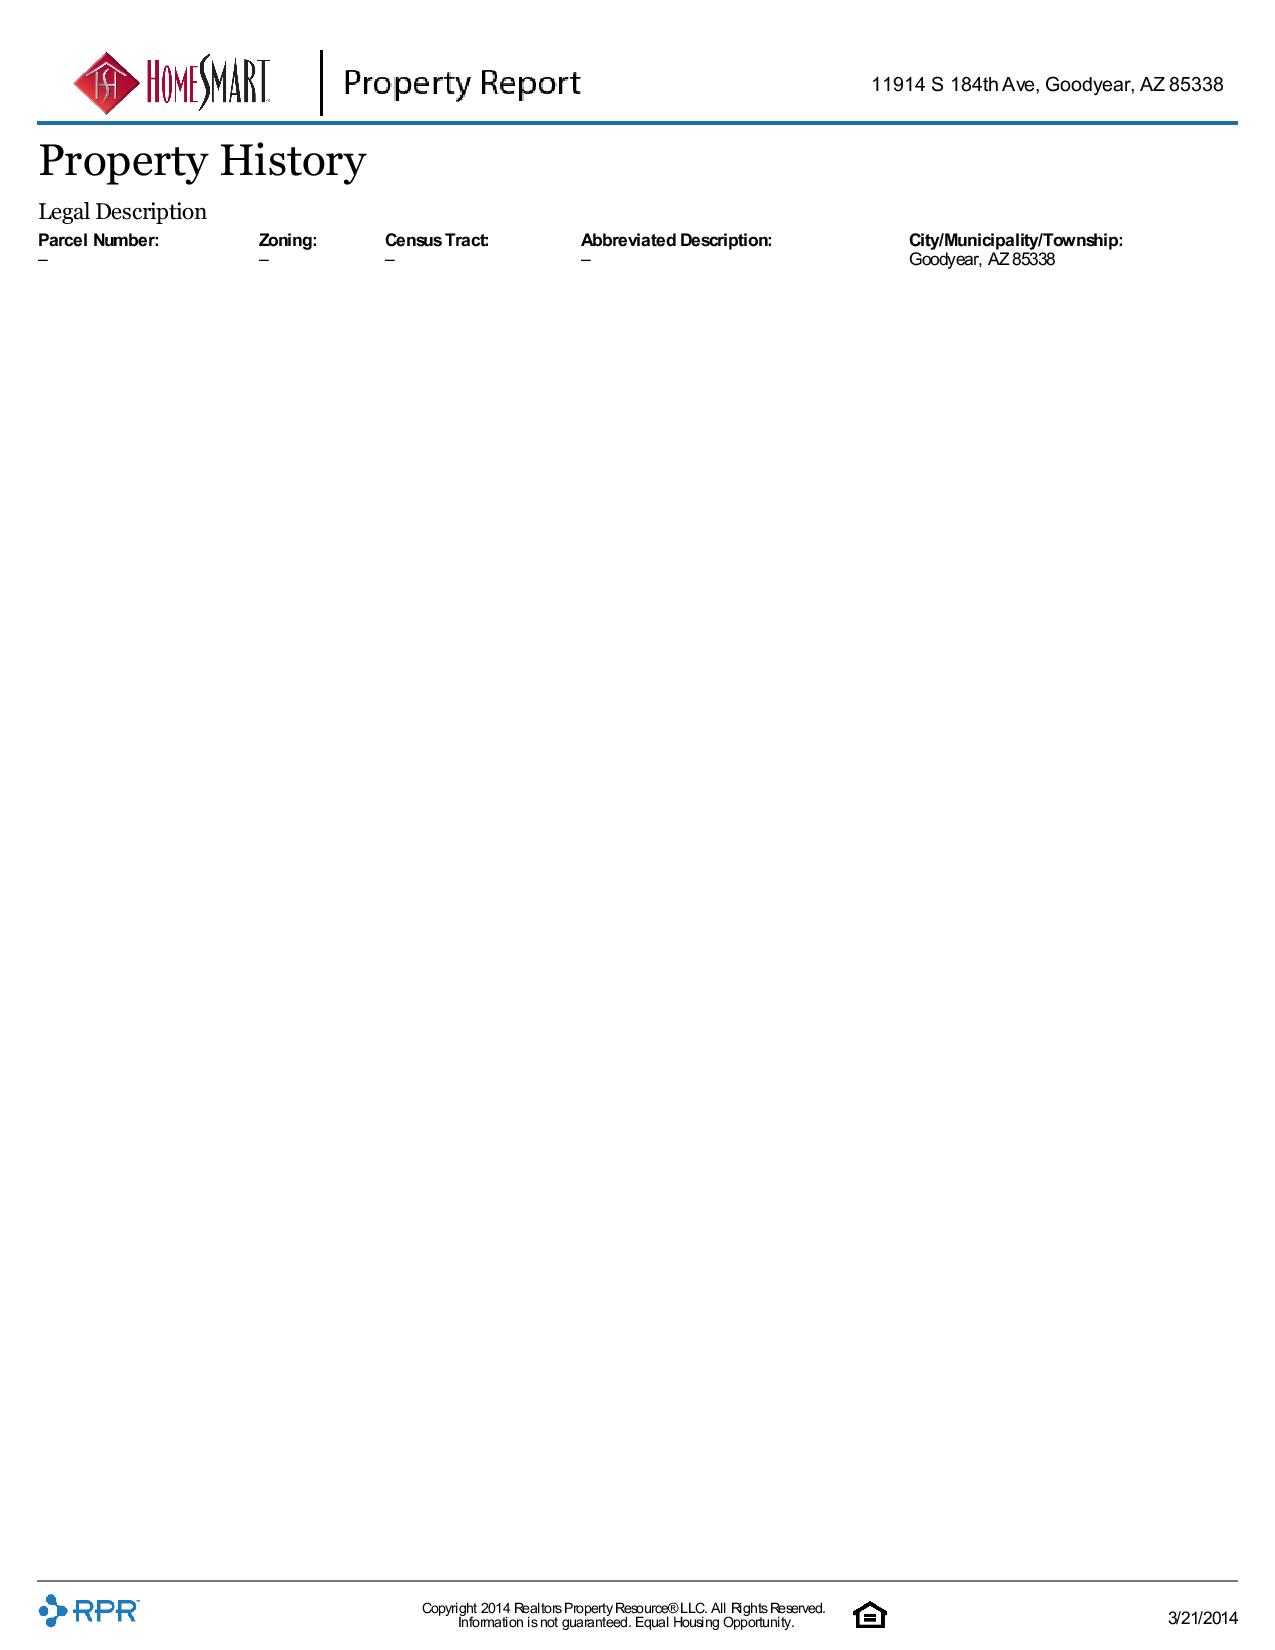 11914-S-184th-Ave-Goodyear-AZ-85338-page-006